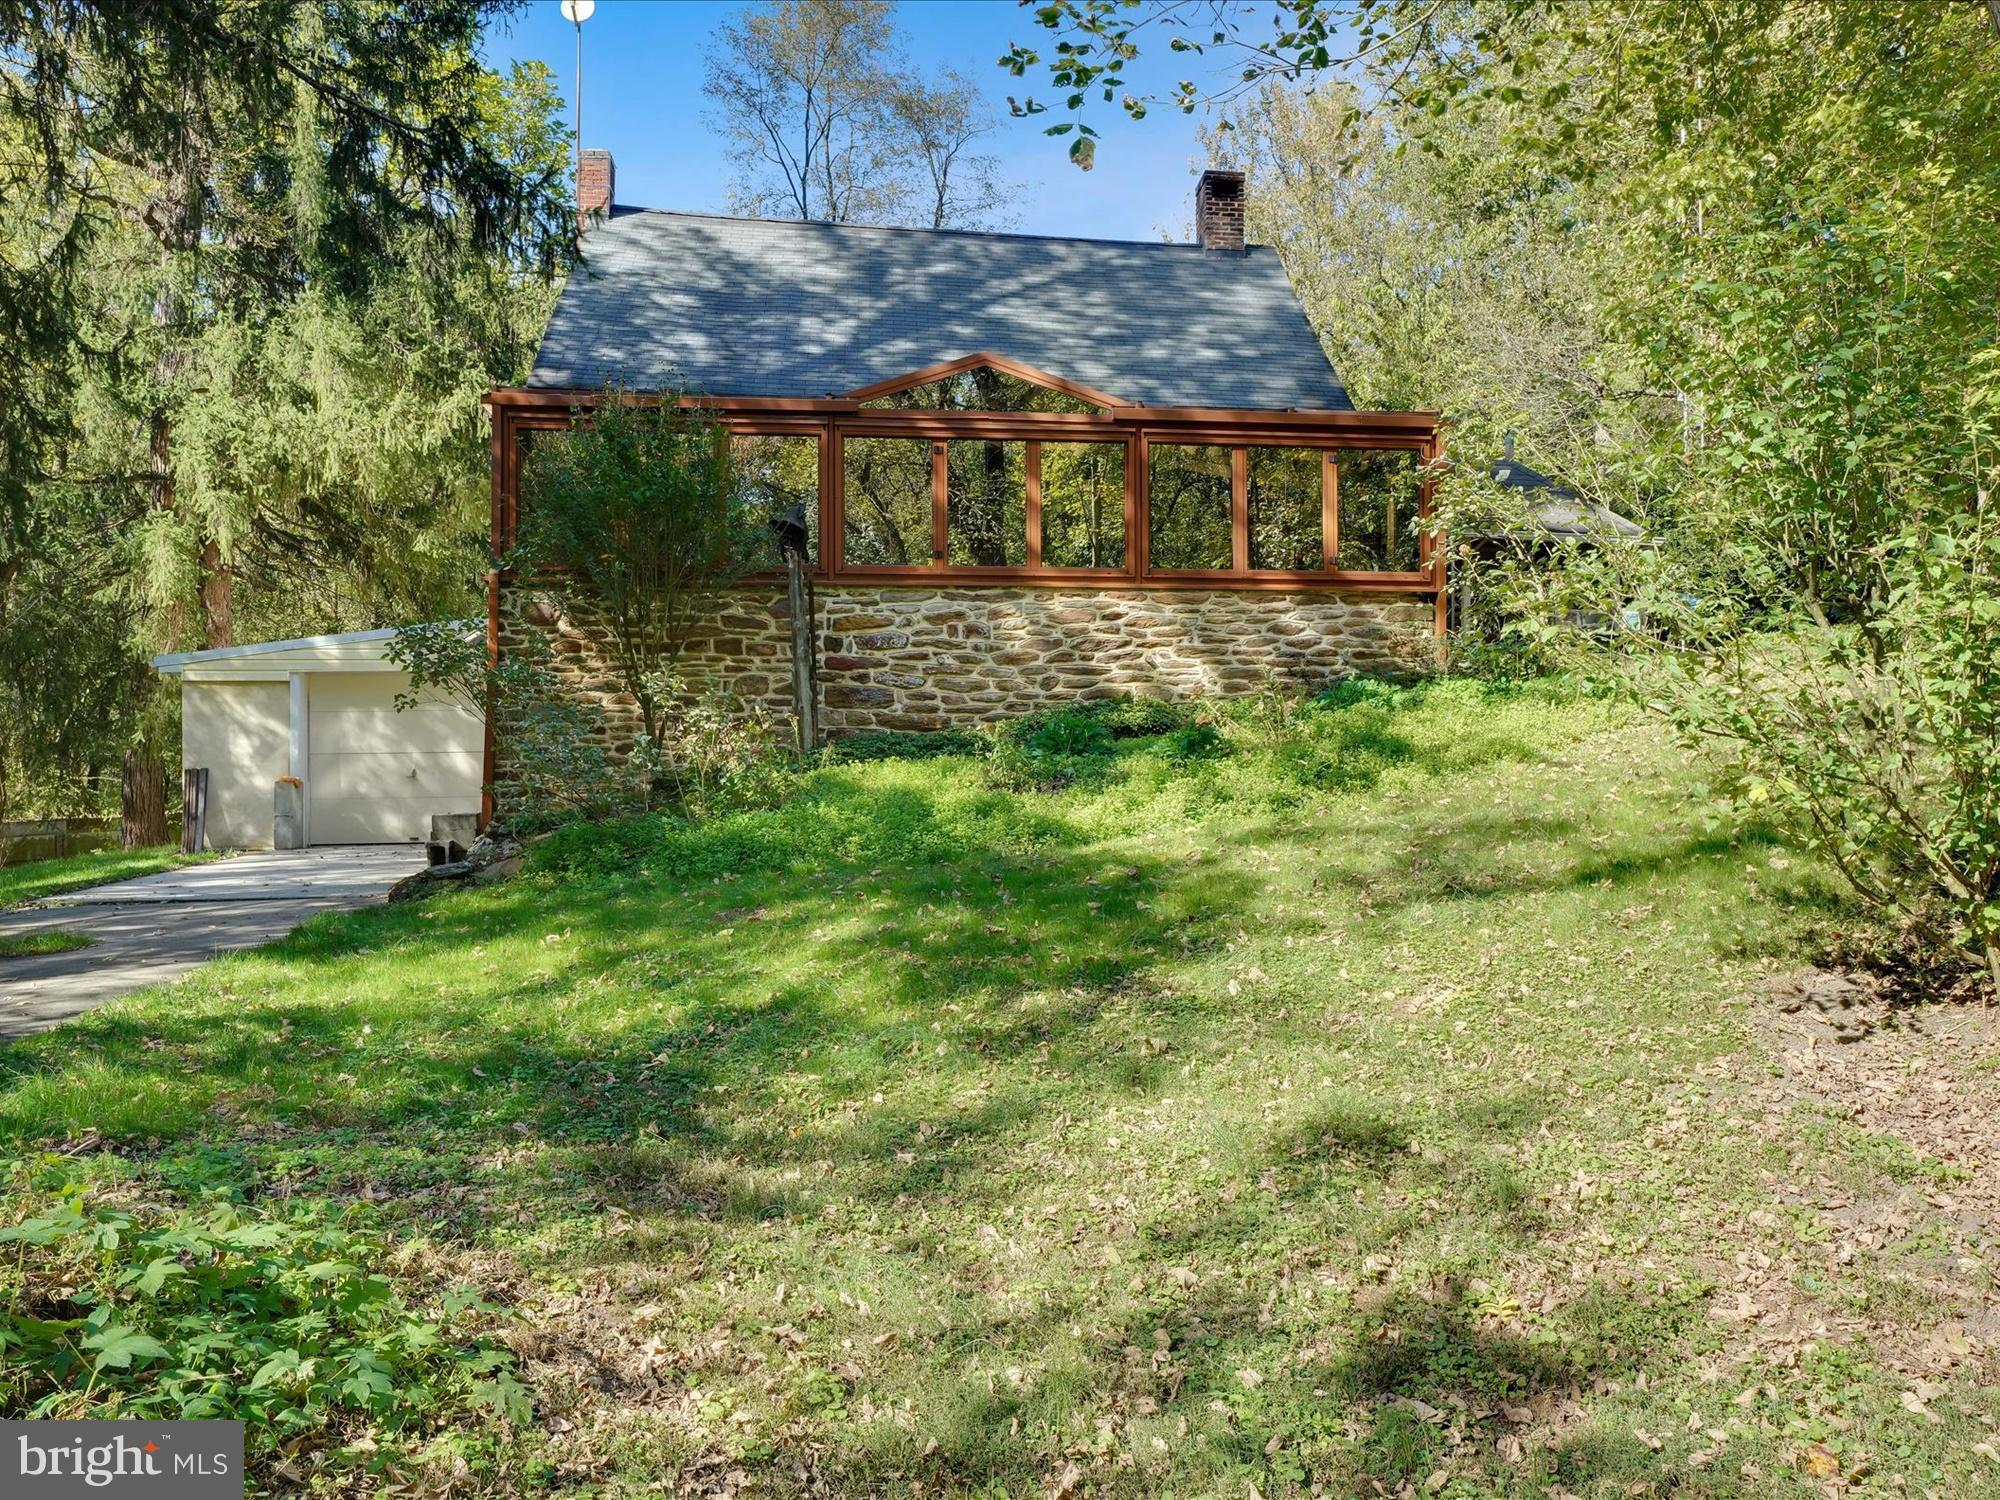 427 RADCLIFF ROAD, WILLOW STREET, PA 17584